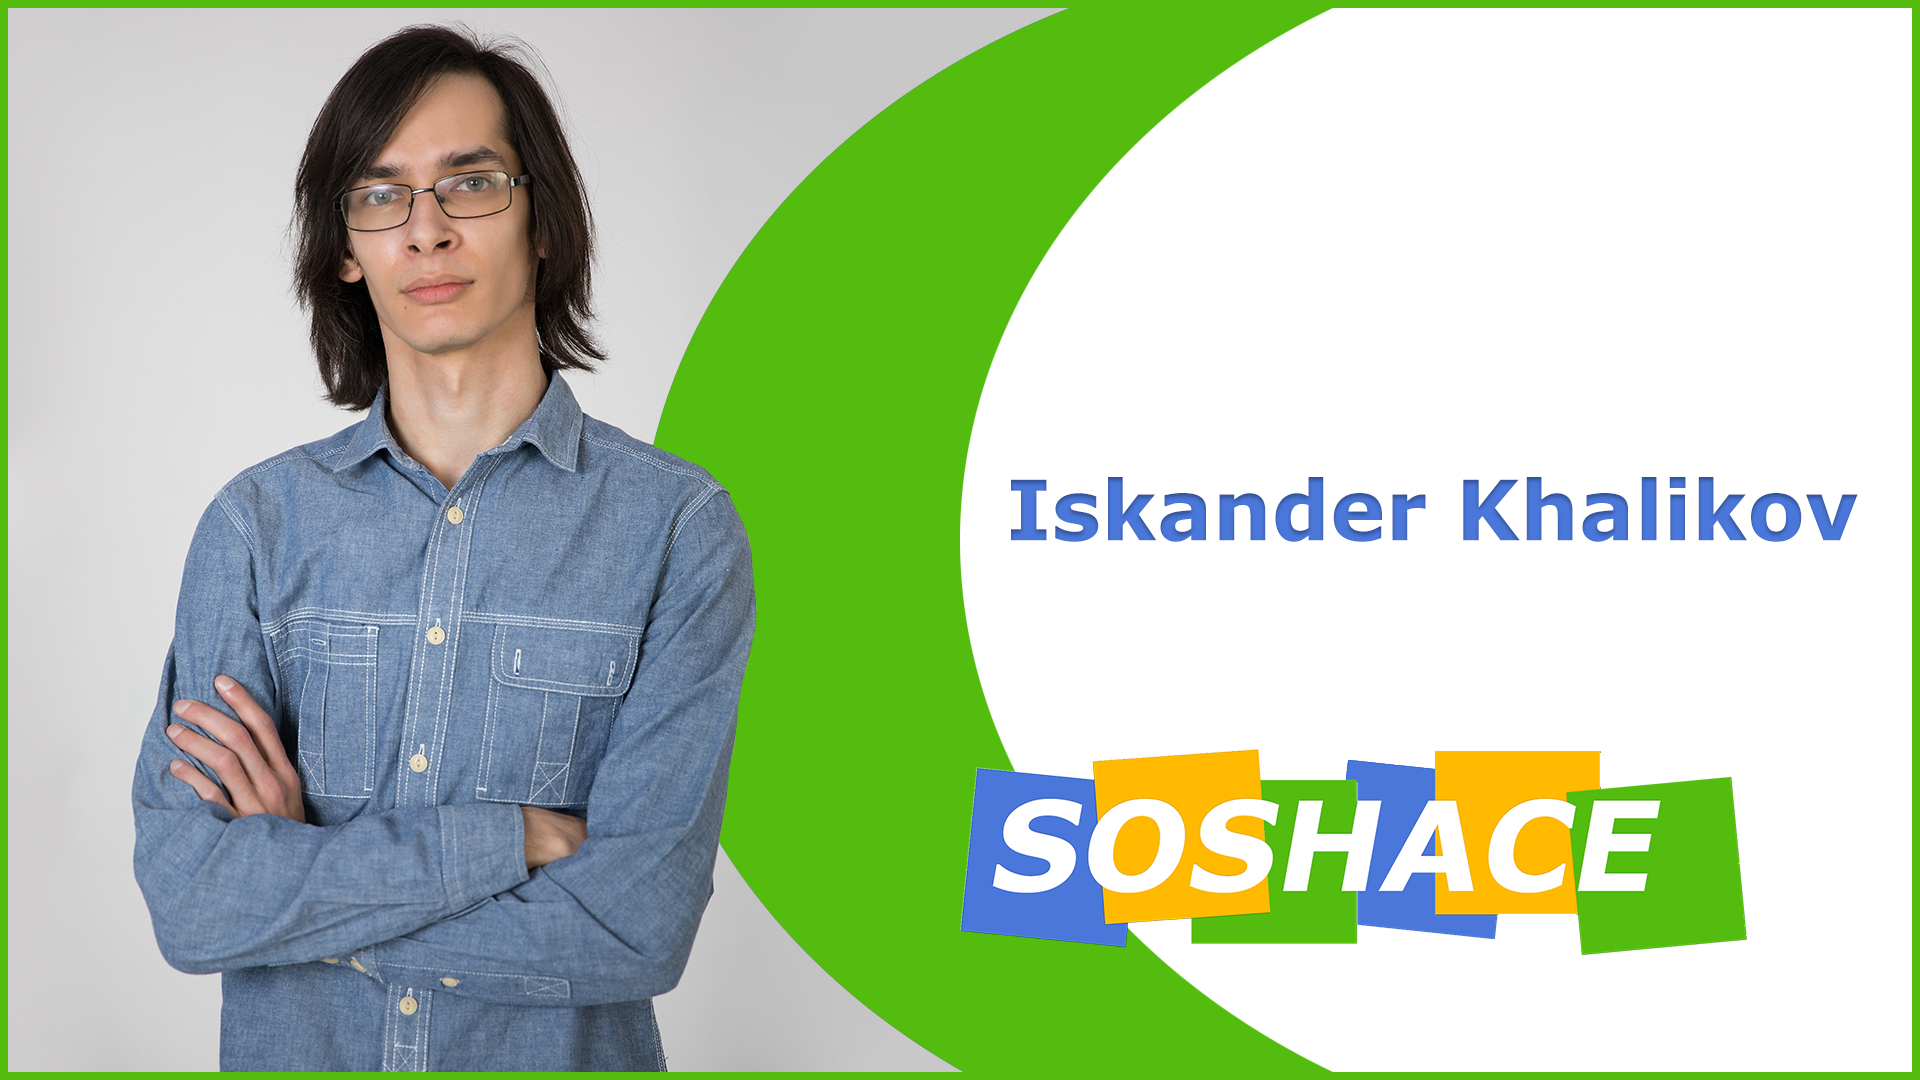 My name is Iskander and I am a full-stack developer with more than 4 years of experience in developing web applications. For frontend development, I use Angular and React/Redux. At the backend, I work with Node.js and Java.